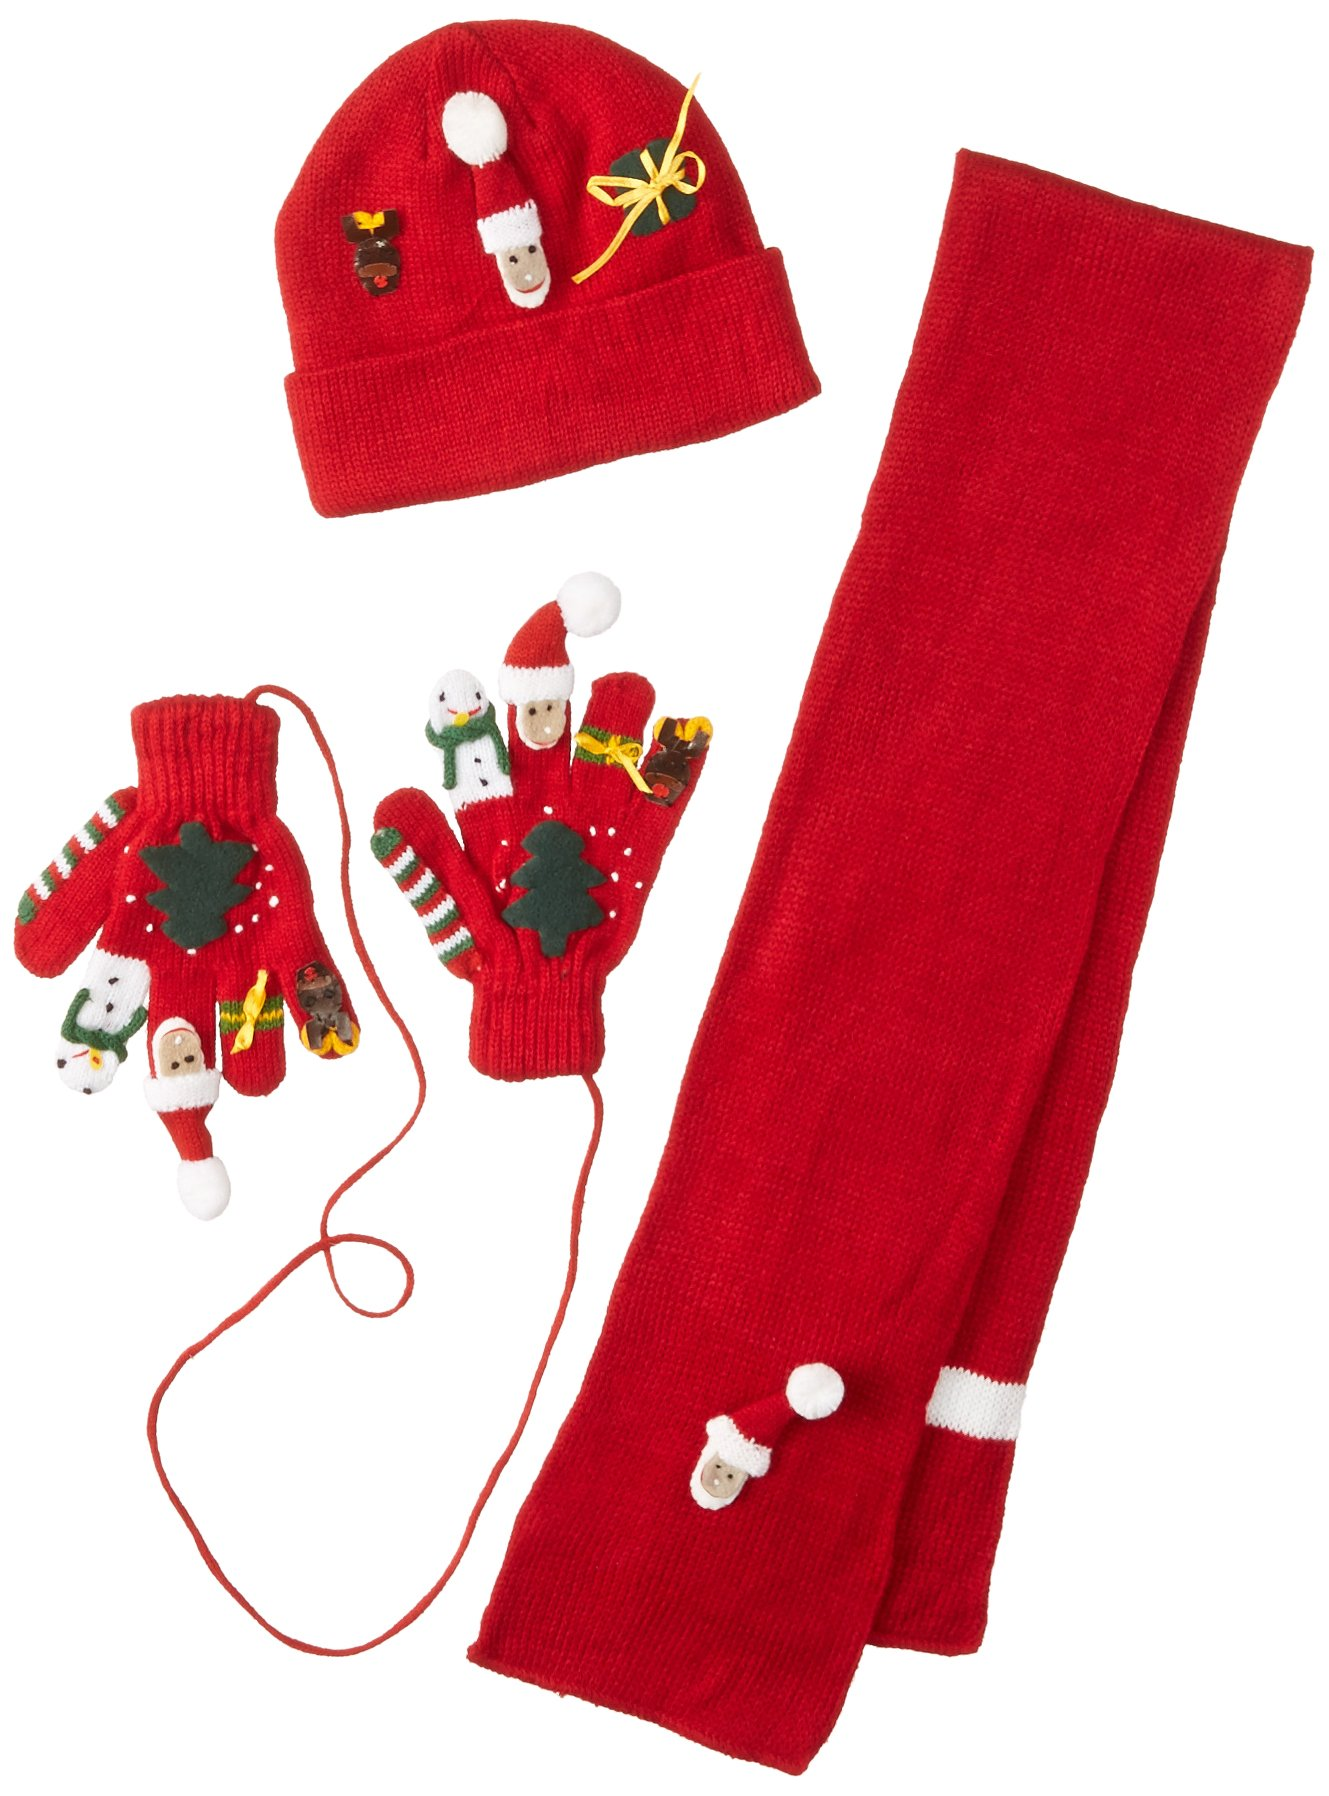 Kidorable Red Christmas Soft Hat/Scarf/Glove Set With Santa, Snowman, Reindeer and More, Ages 3-5